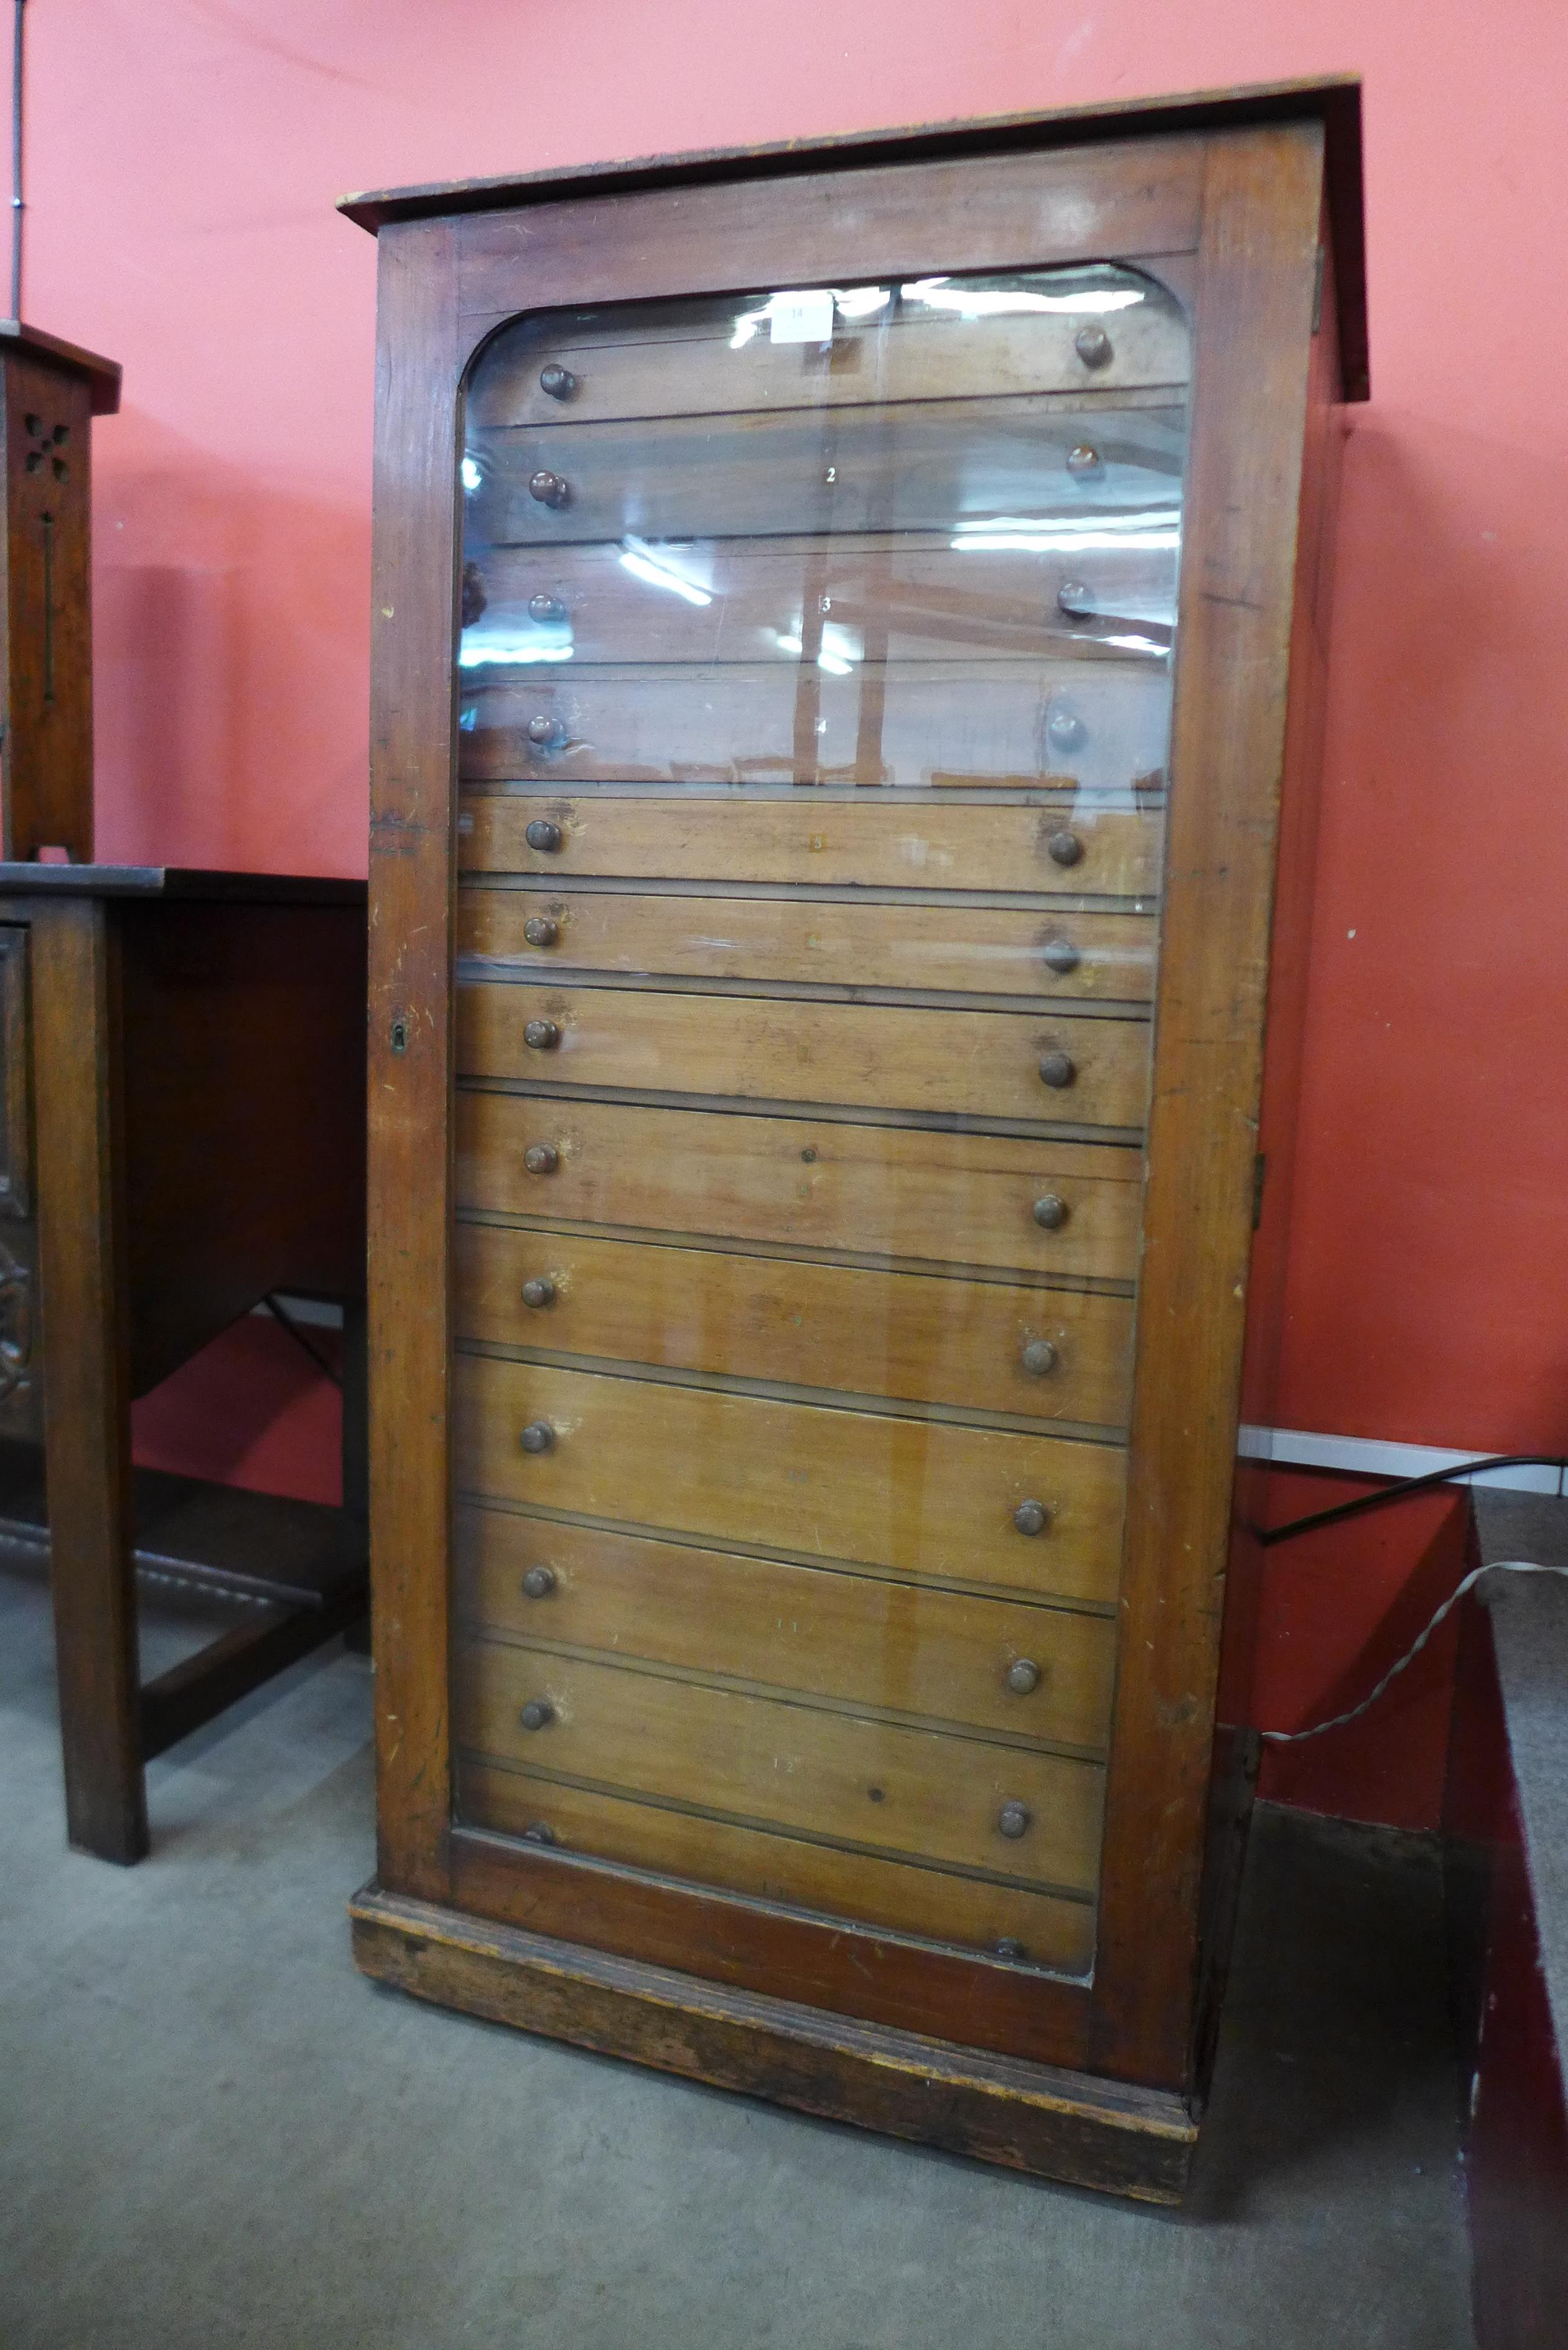 A Victorian mahogany museum collectors cabinet, with single glazed door revealing thirteen drawers